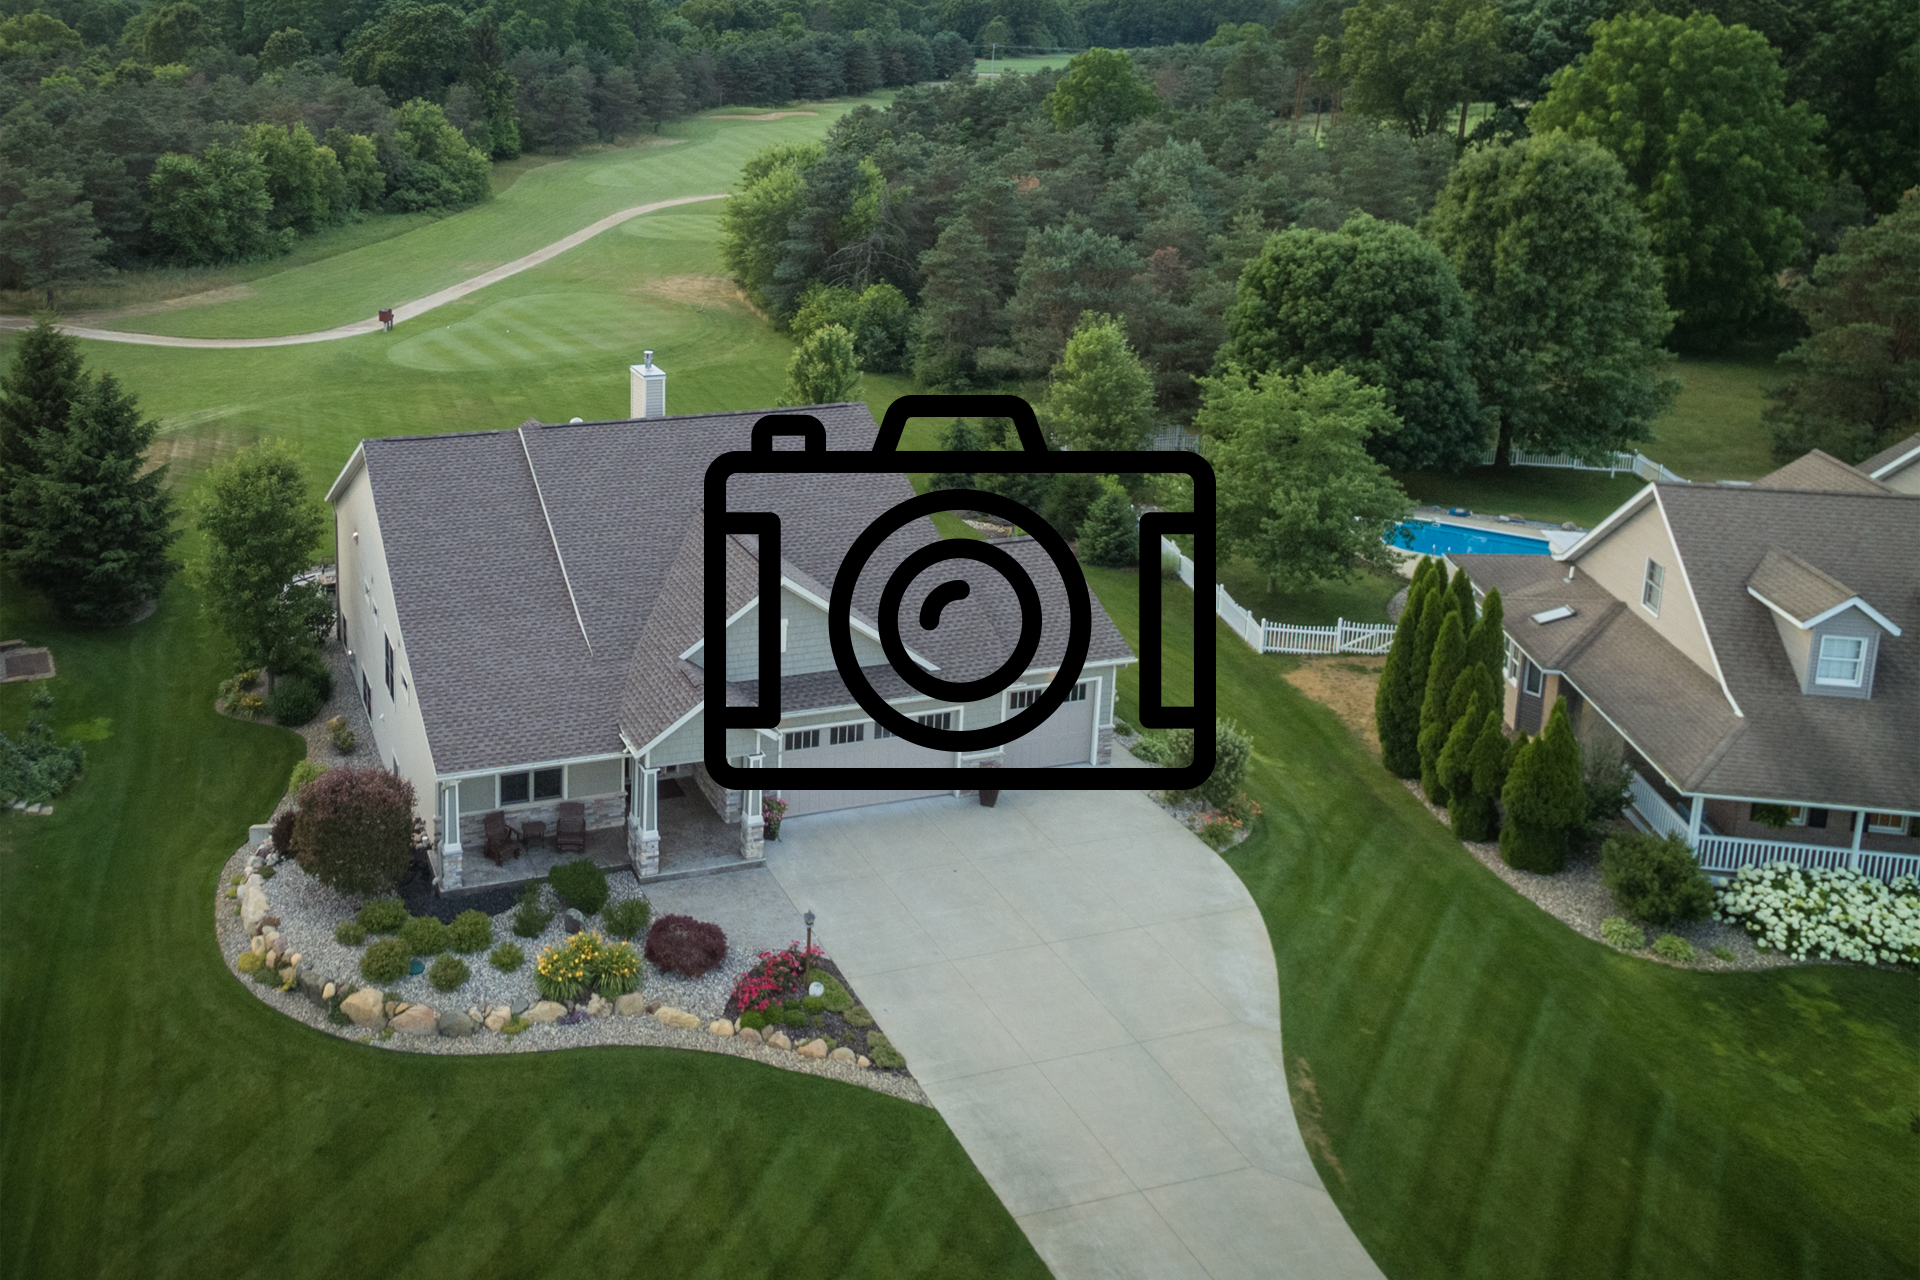 Exterior Drone Image.jpg